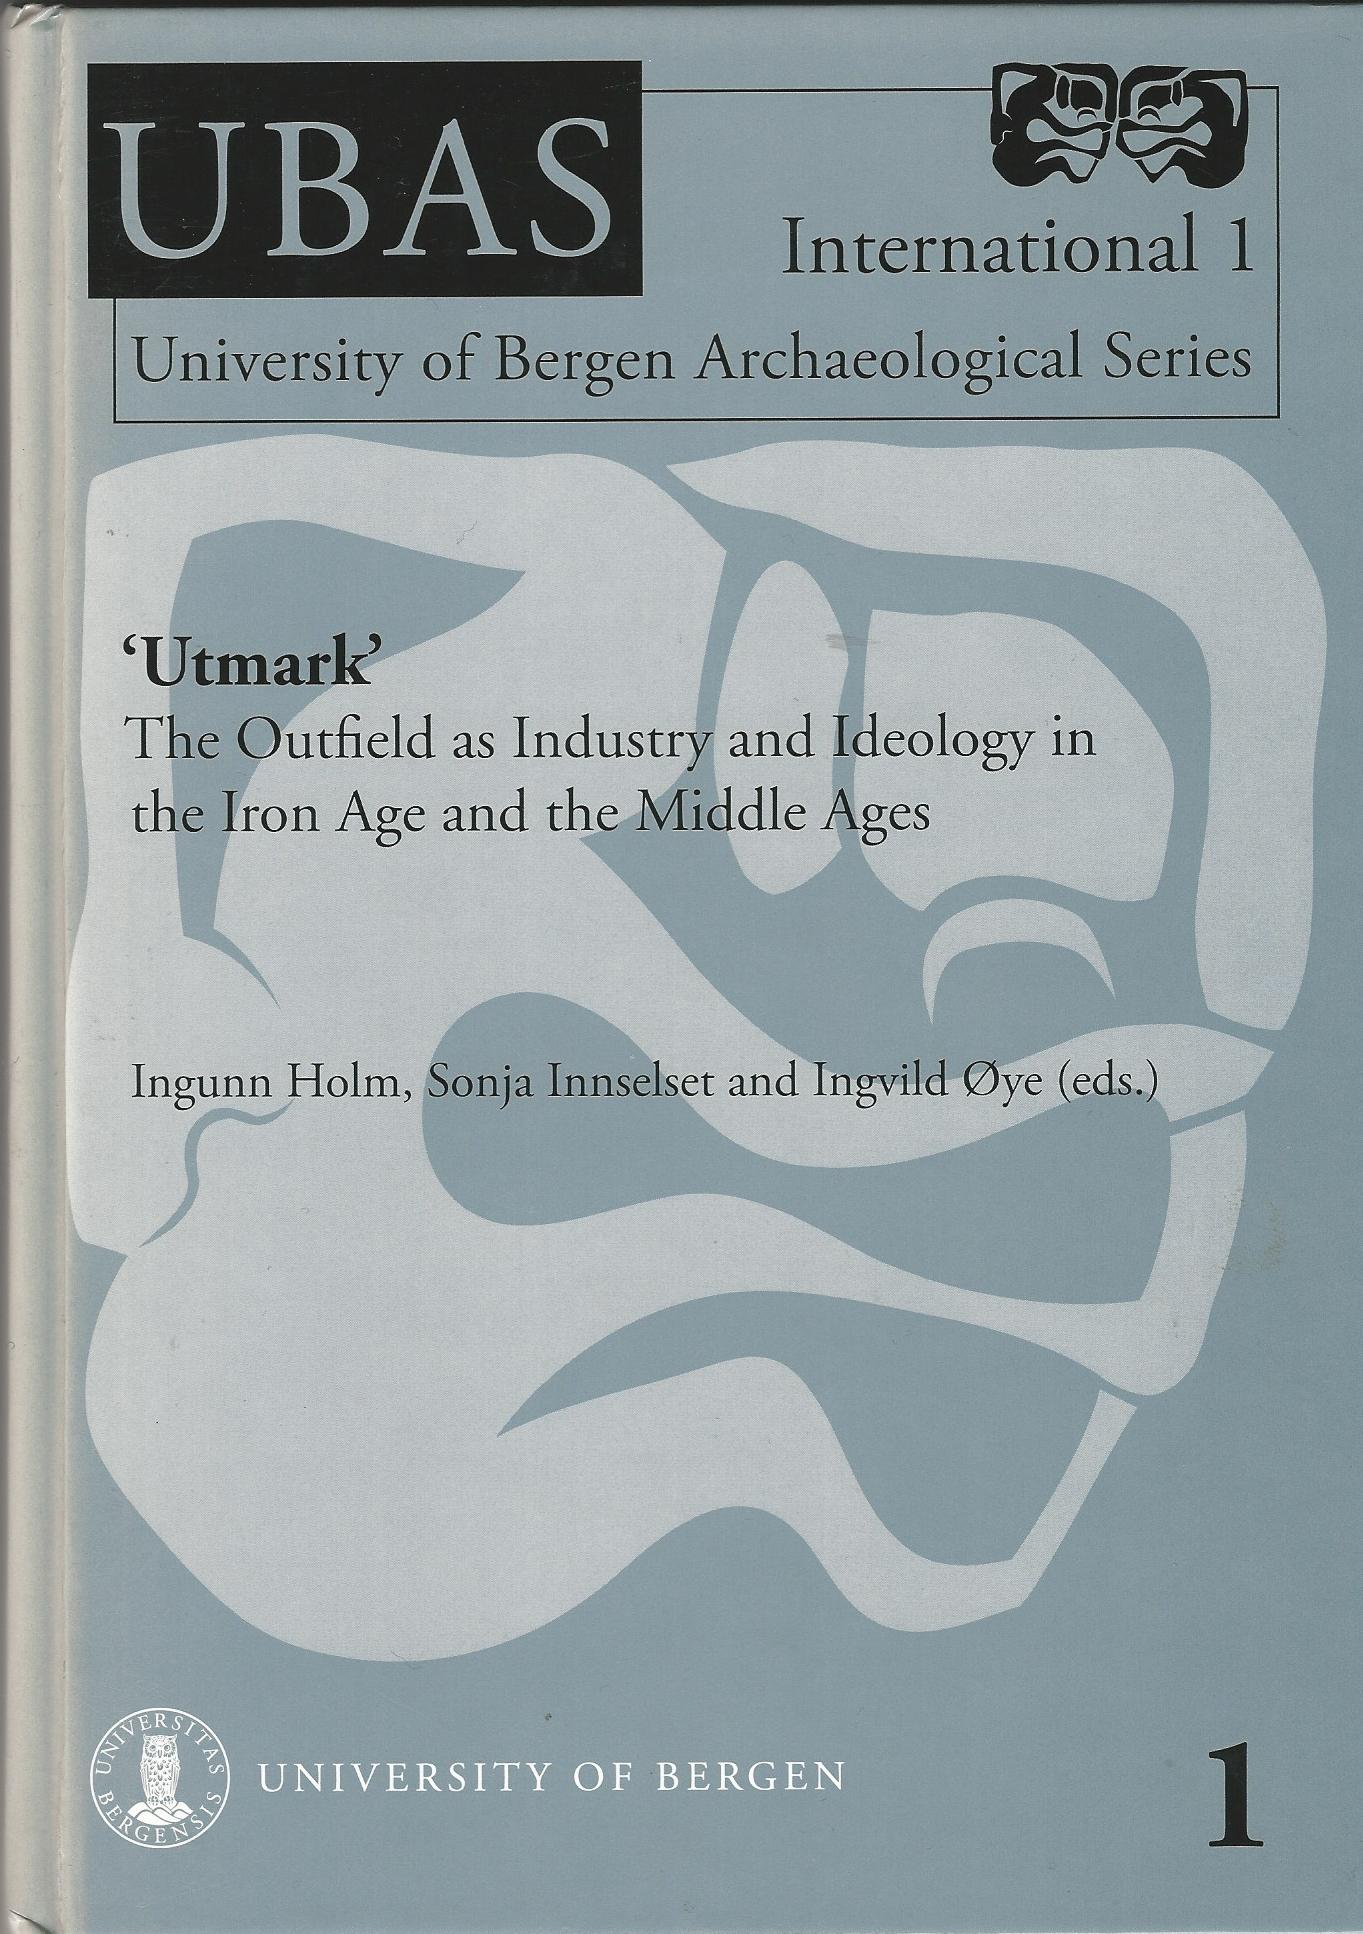 Image for 'Utmark' The Outfield as Industry and Ideology in the Iron Age and the Middle Ages